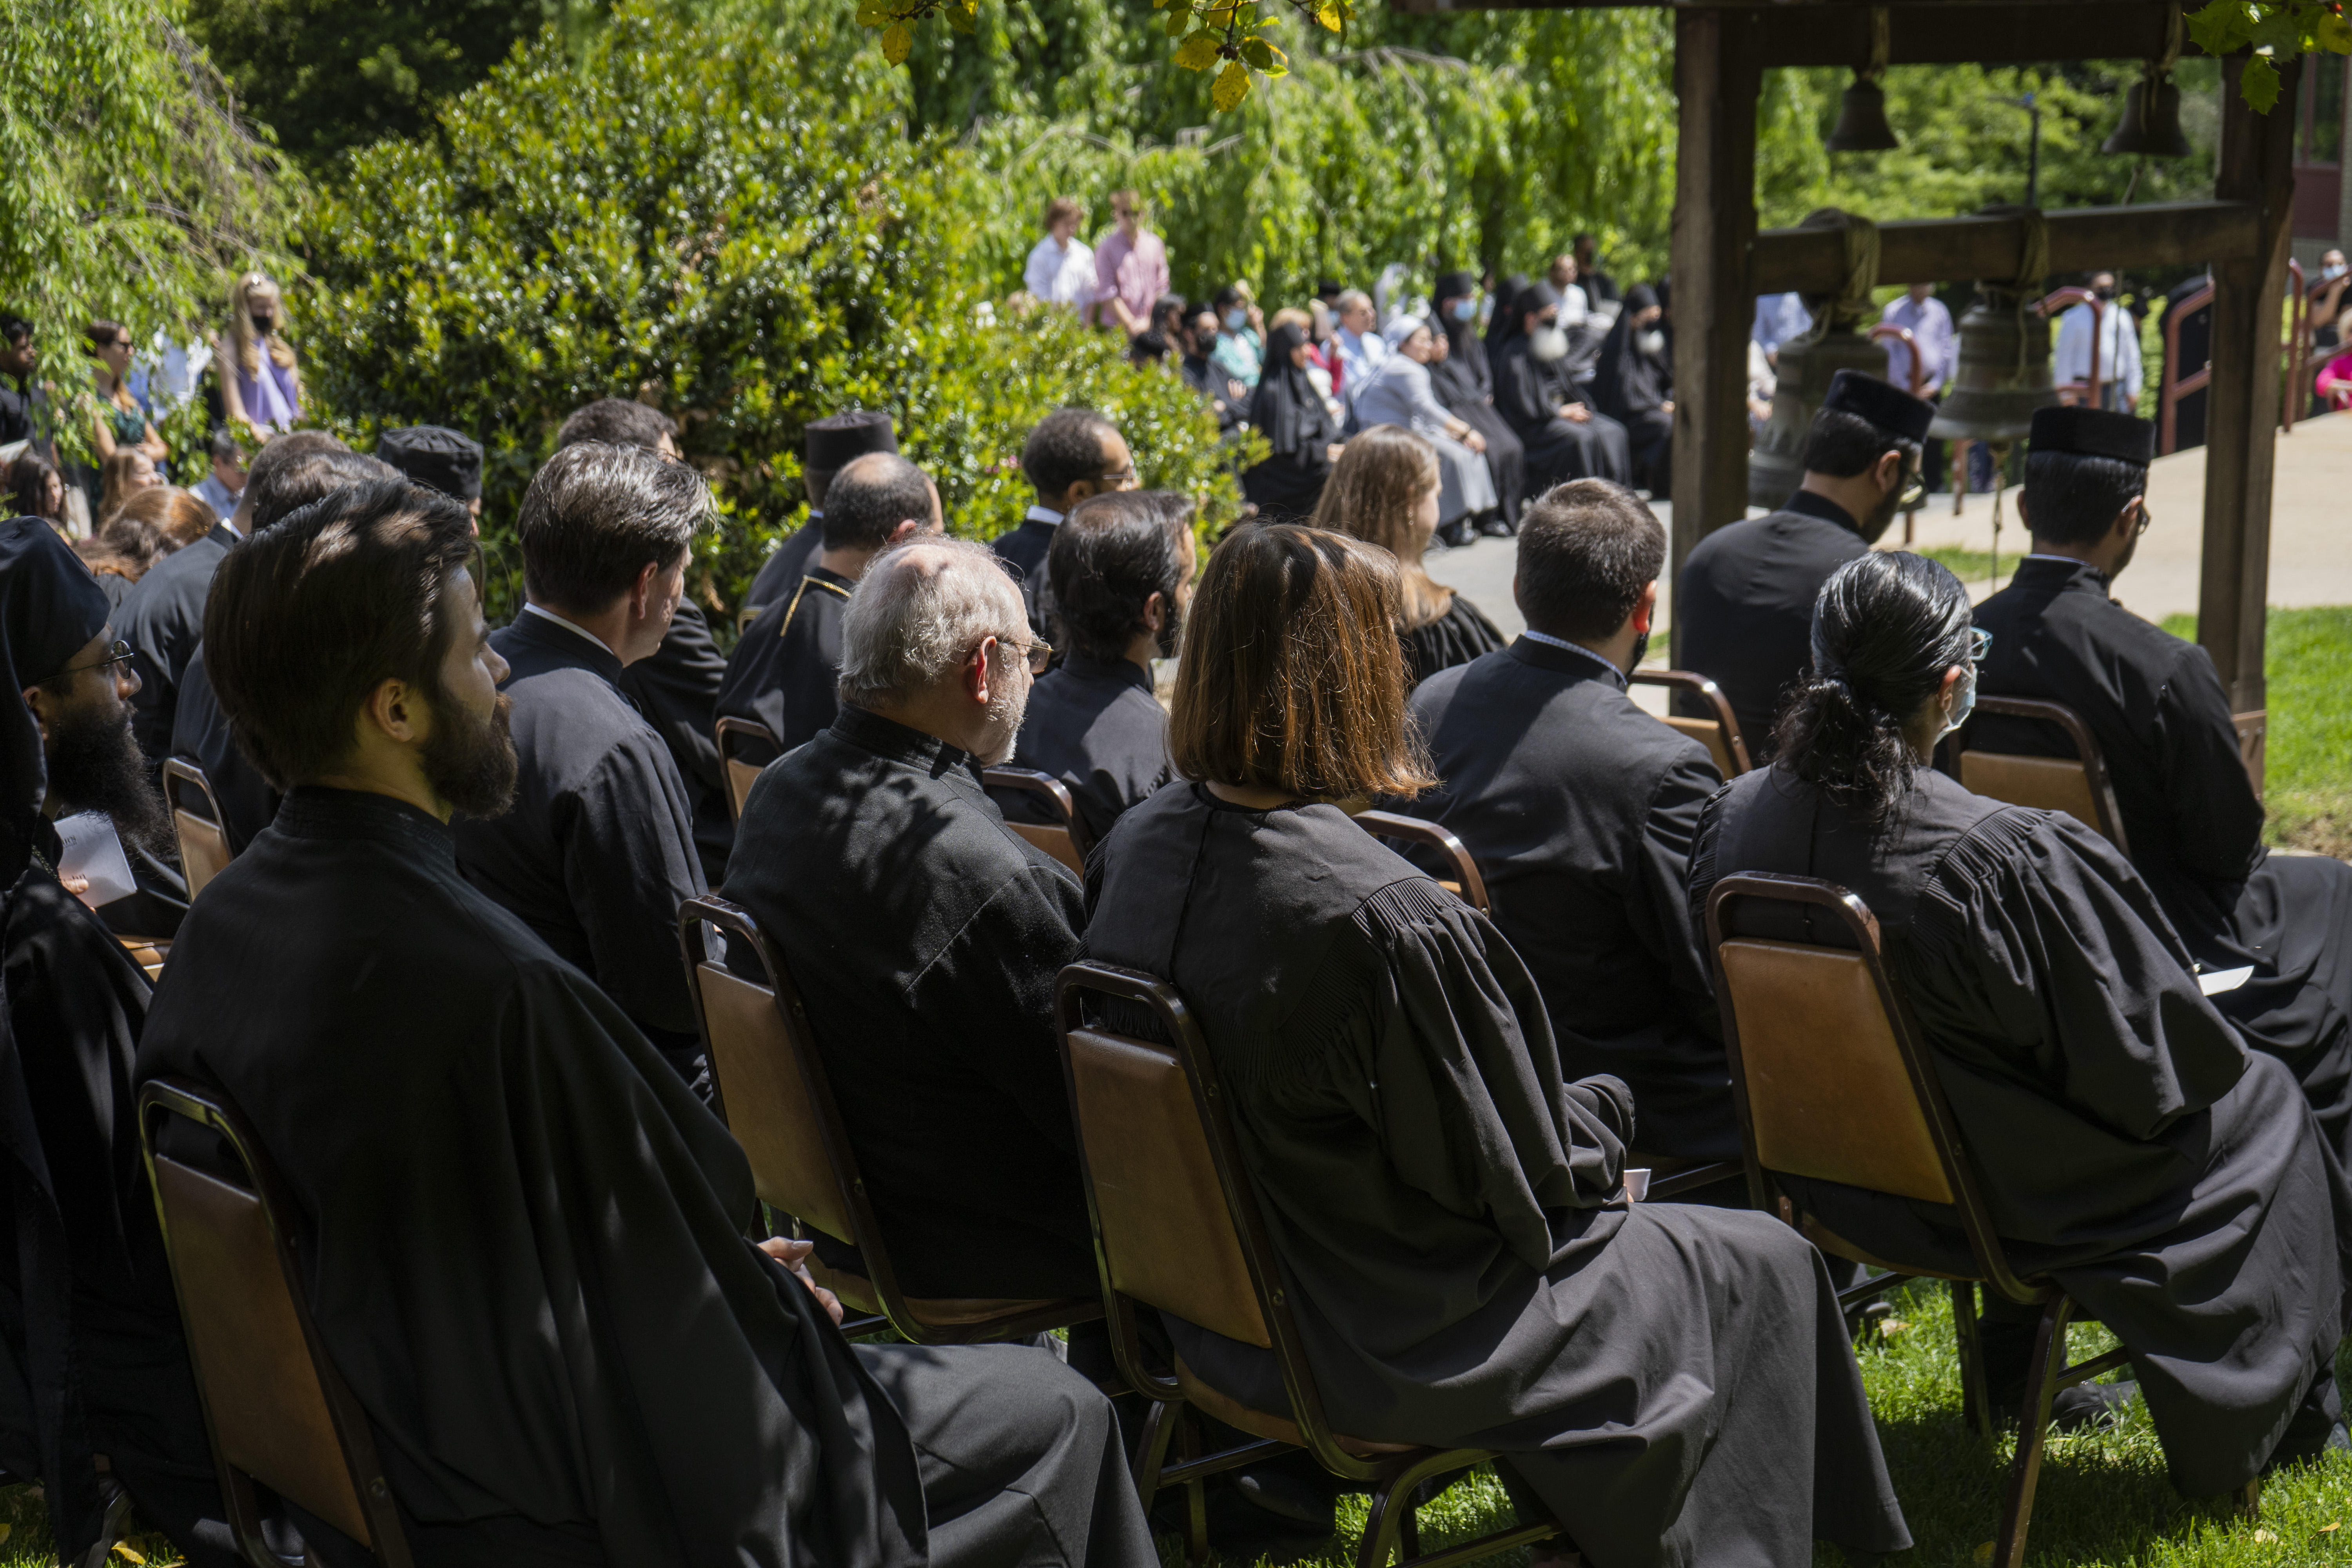 Scenes from Commencement